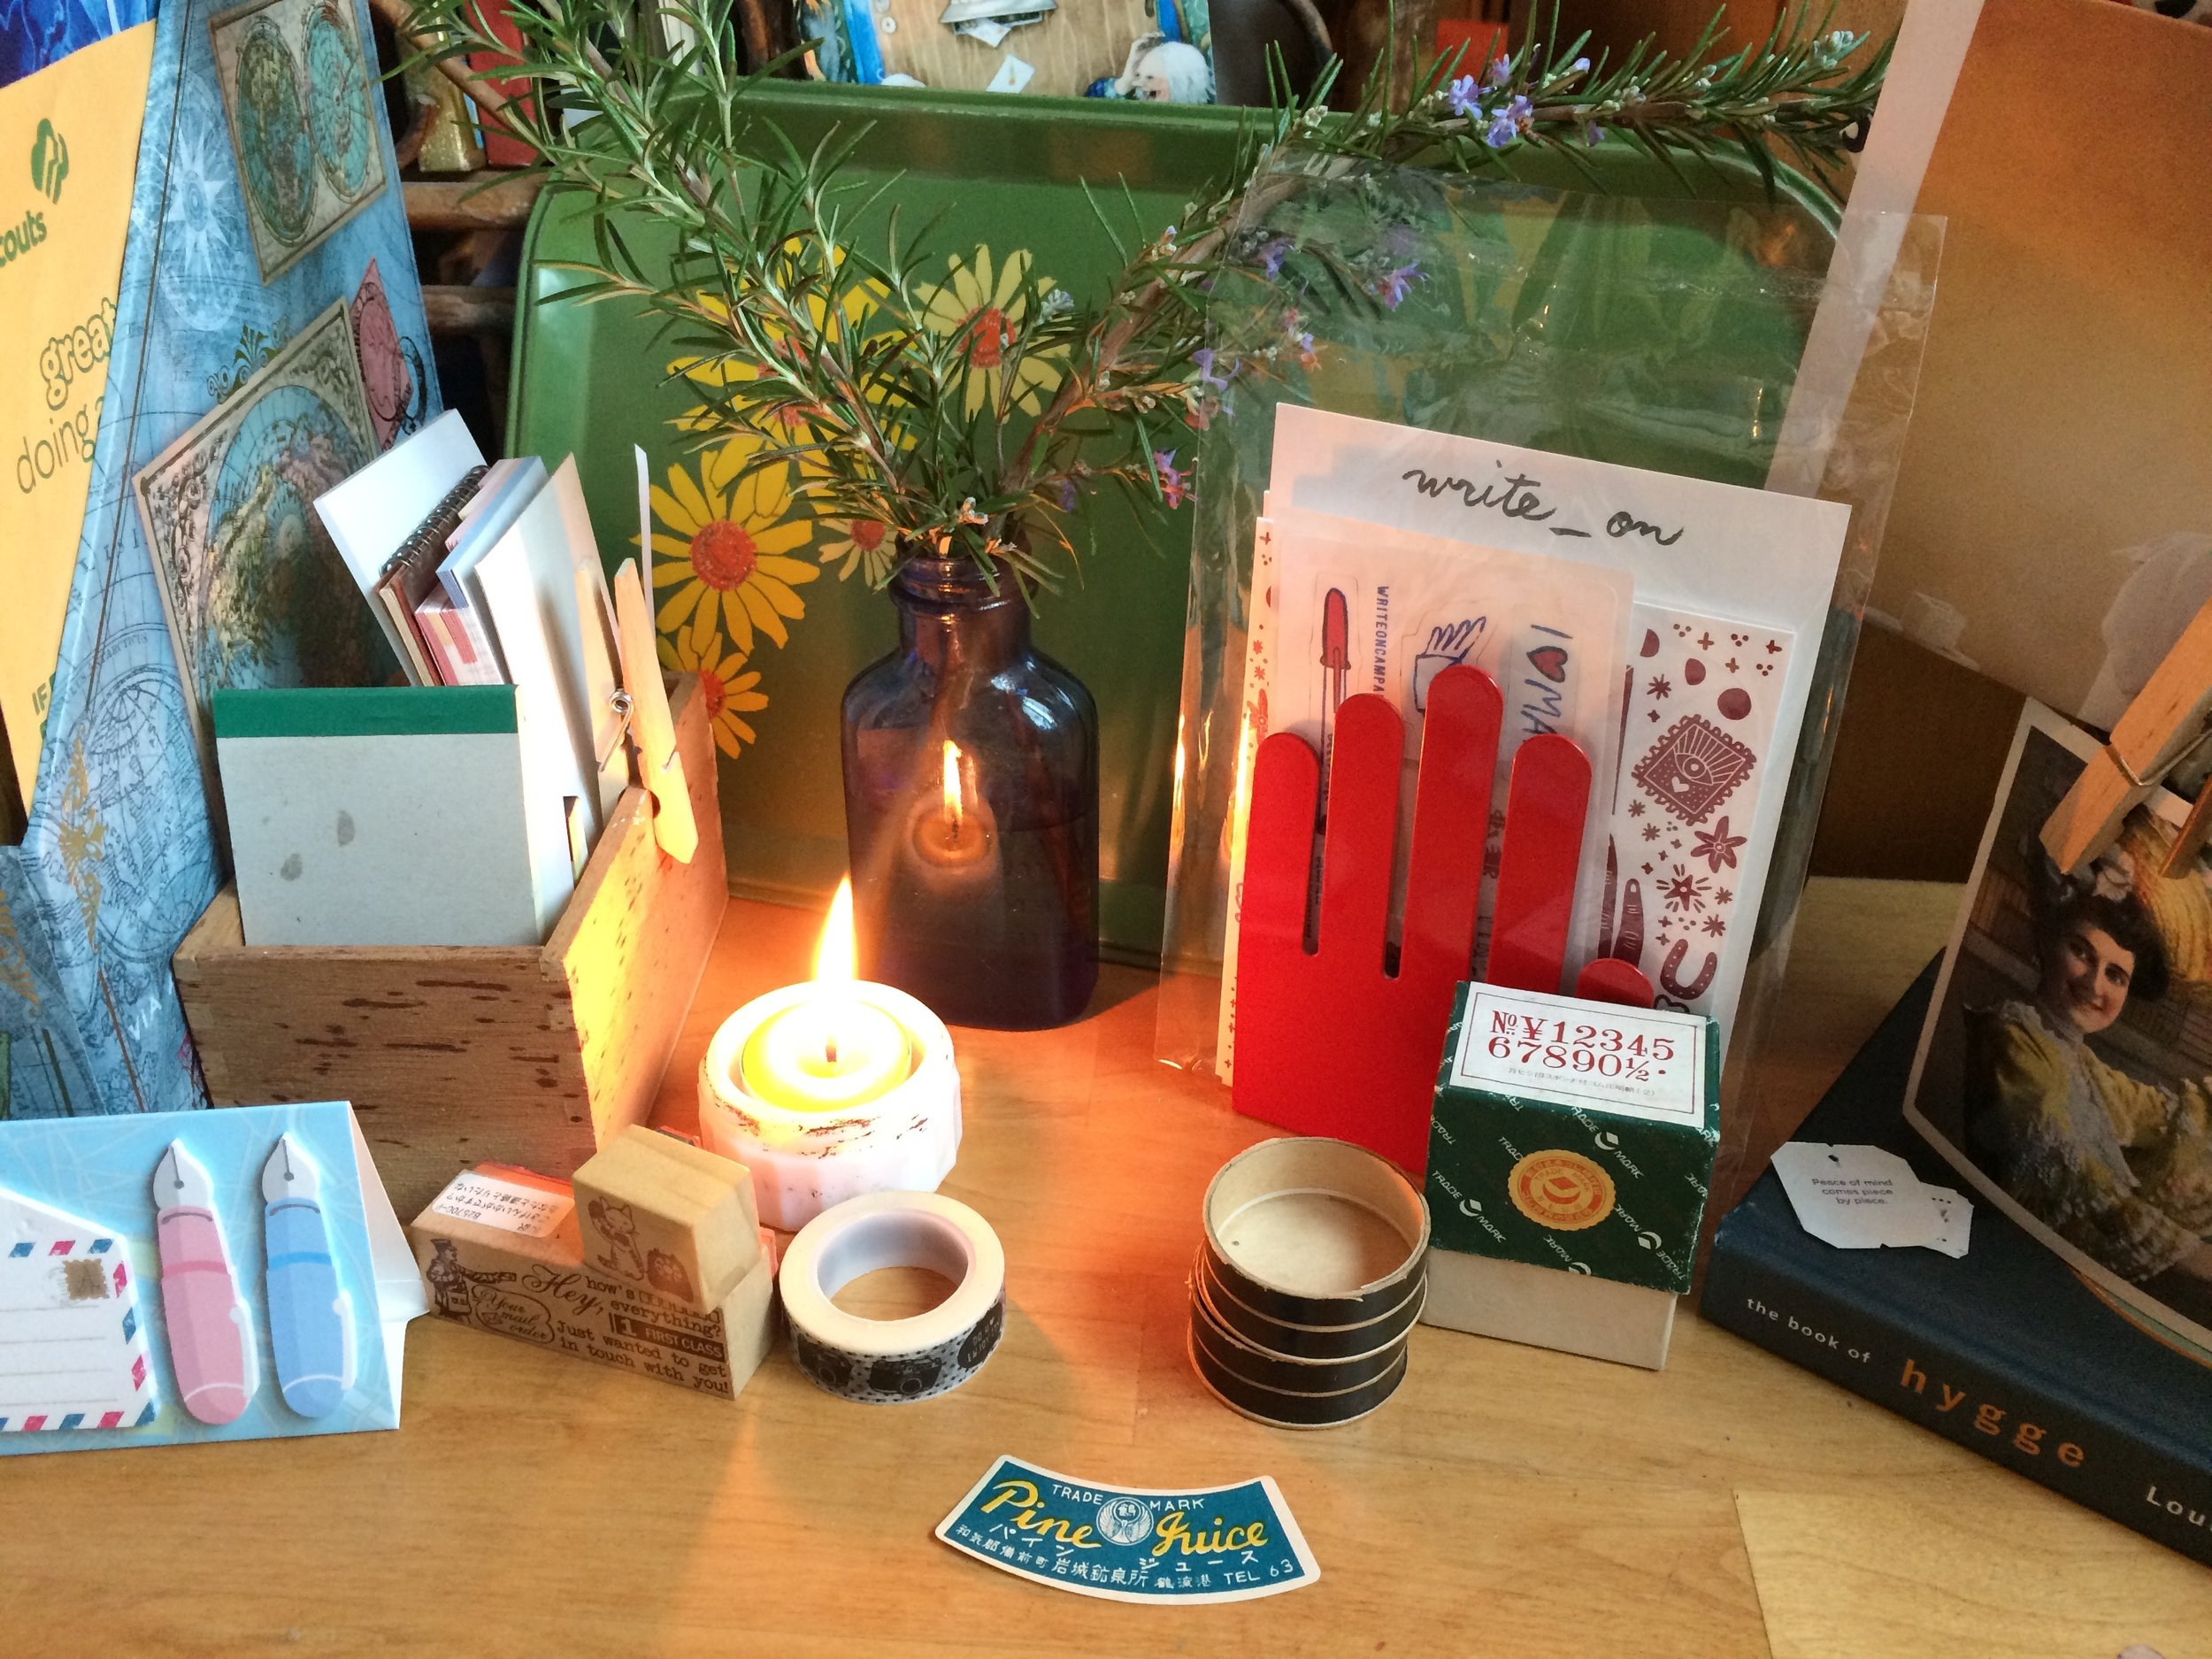 Carving out time to write in our often busy lives can be challenging.  Creating a warm and welcoming space to do so can help you make the time! Miss Polly readies her space by lighting a candle and arranging freshly plucked rosemary on her desk.